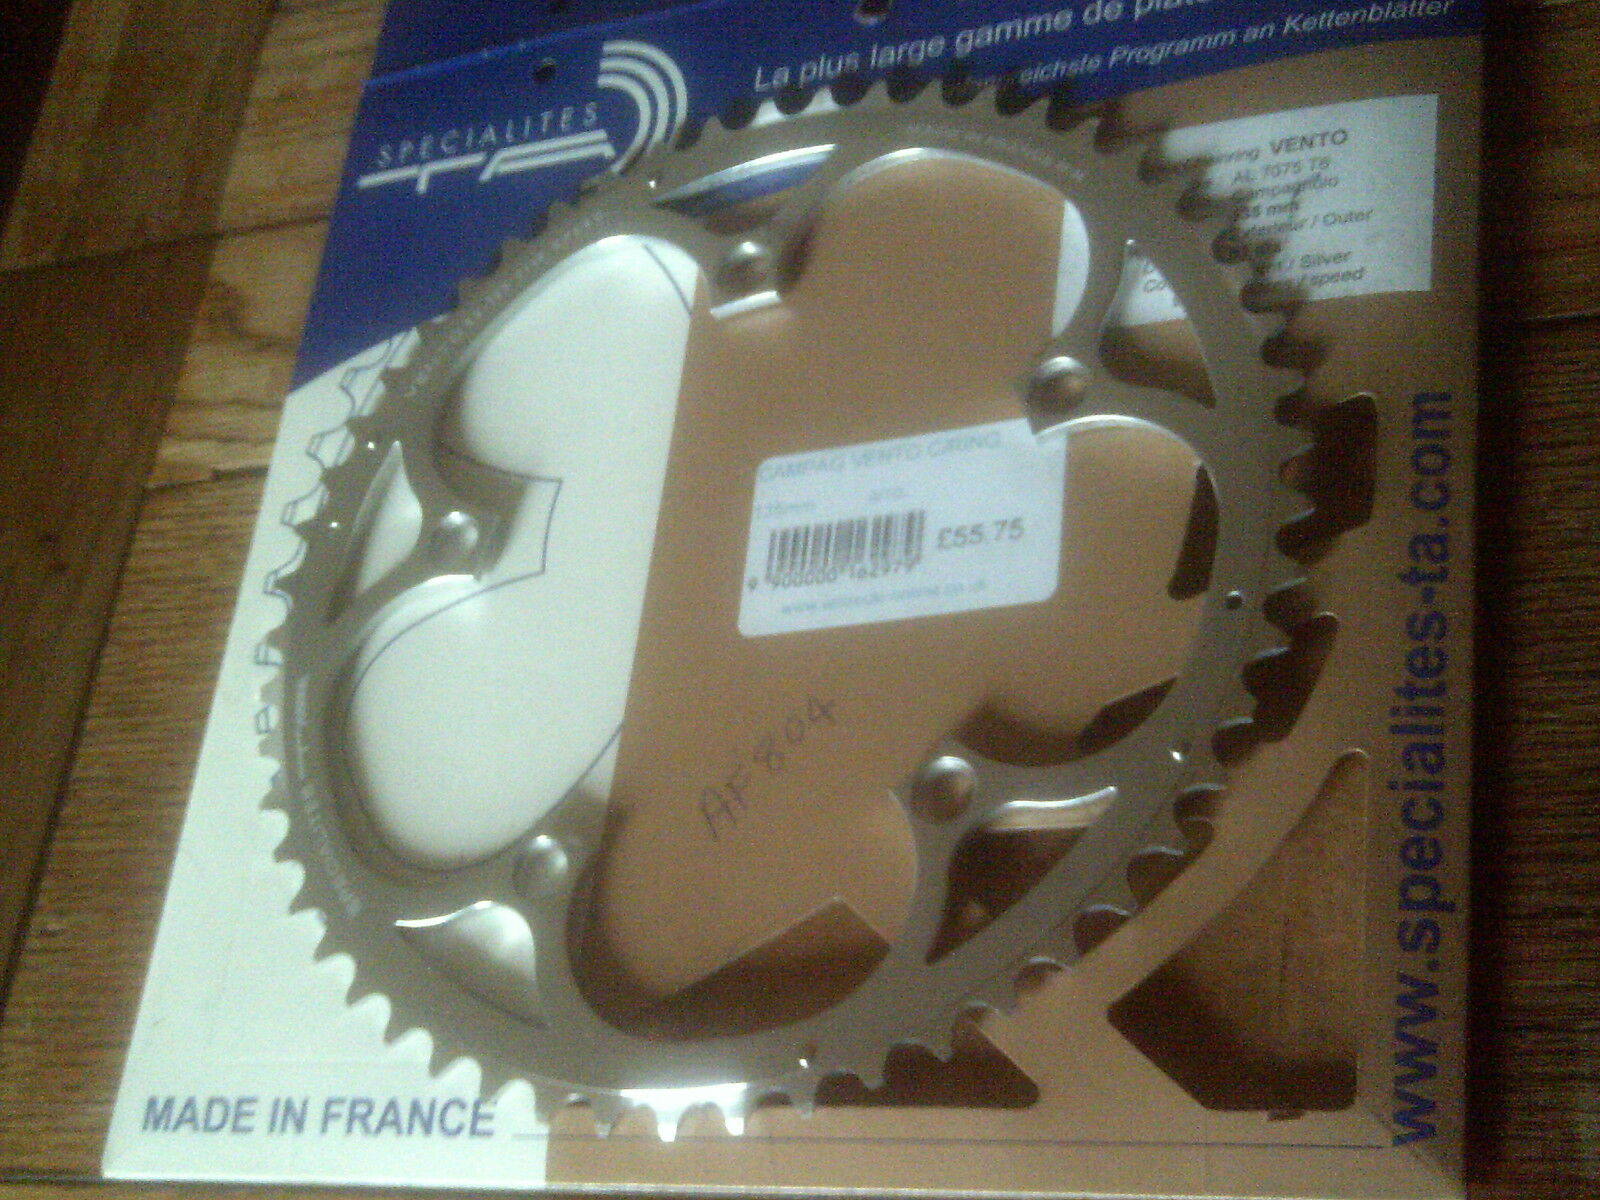 NOS 53 TOOTH 135BCD  SPECIALITES TA  9 10 SPEED VENTO  CHAINRING